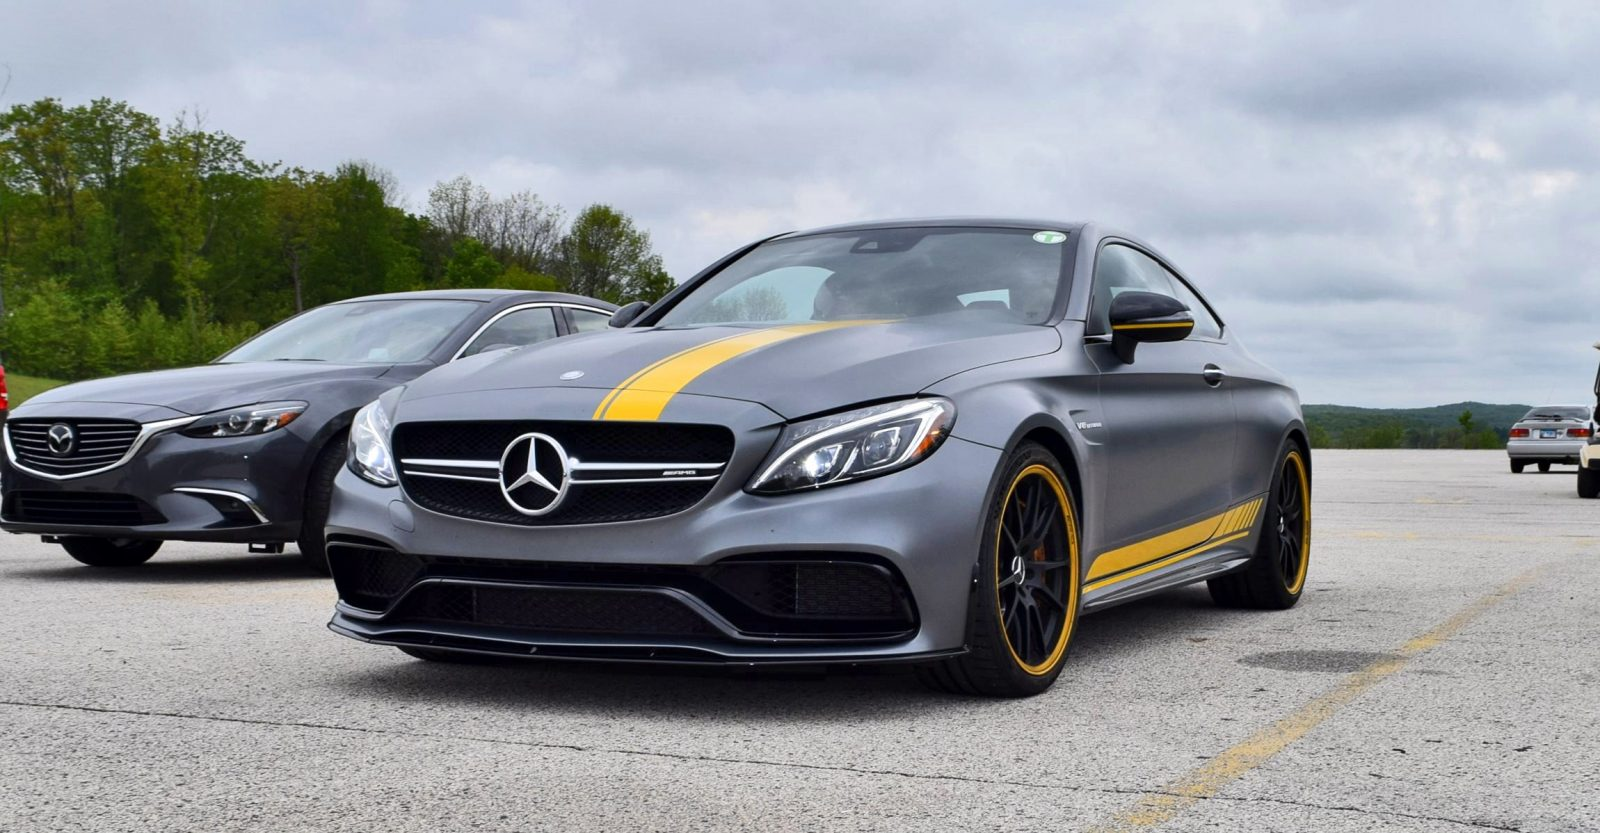 2017 mercedes amg c63 s coupe1 copy. Black Bedroom Furniture Sets. Home Design Ideas